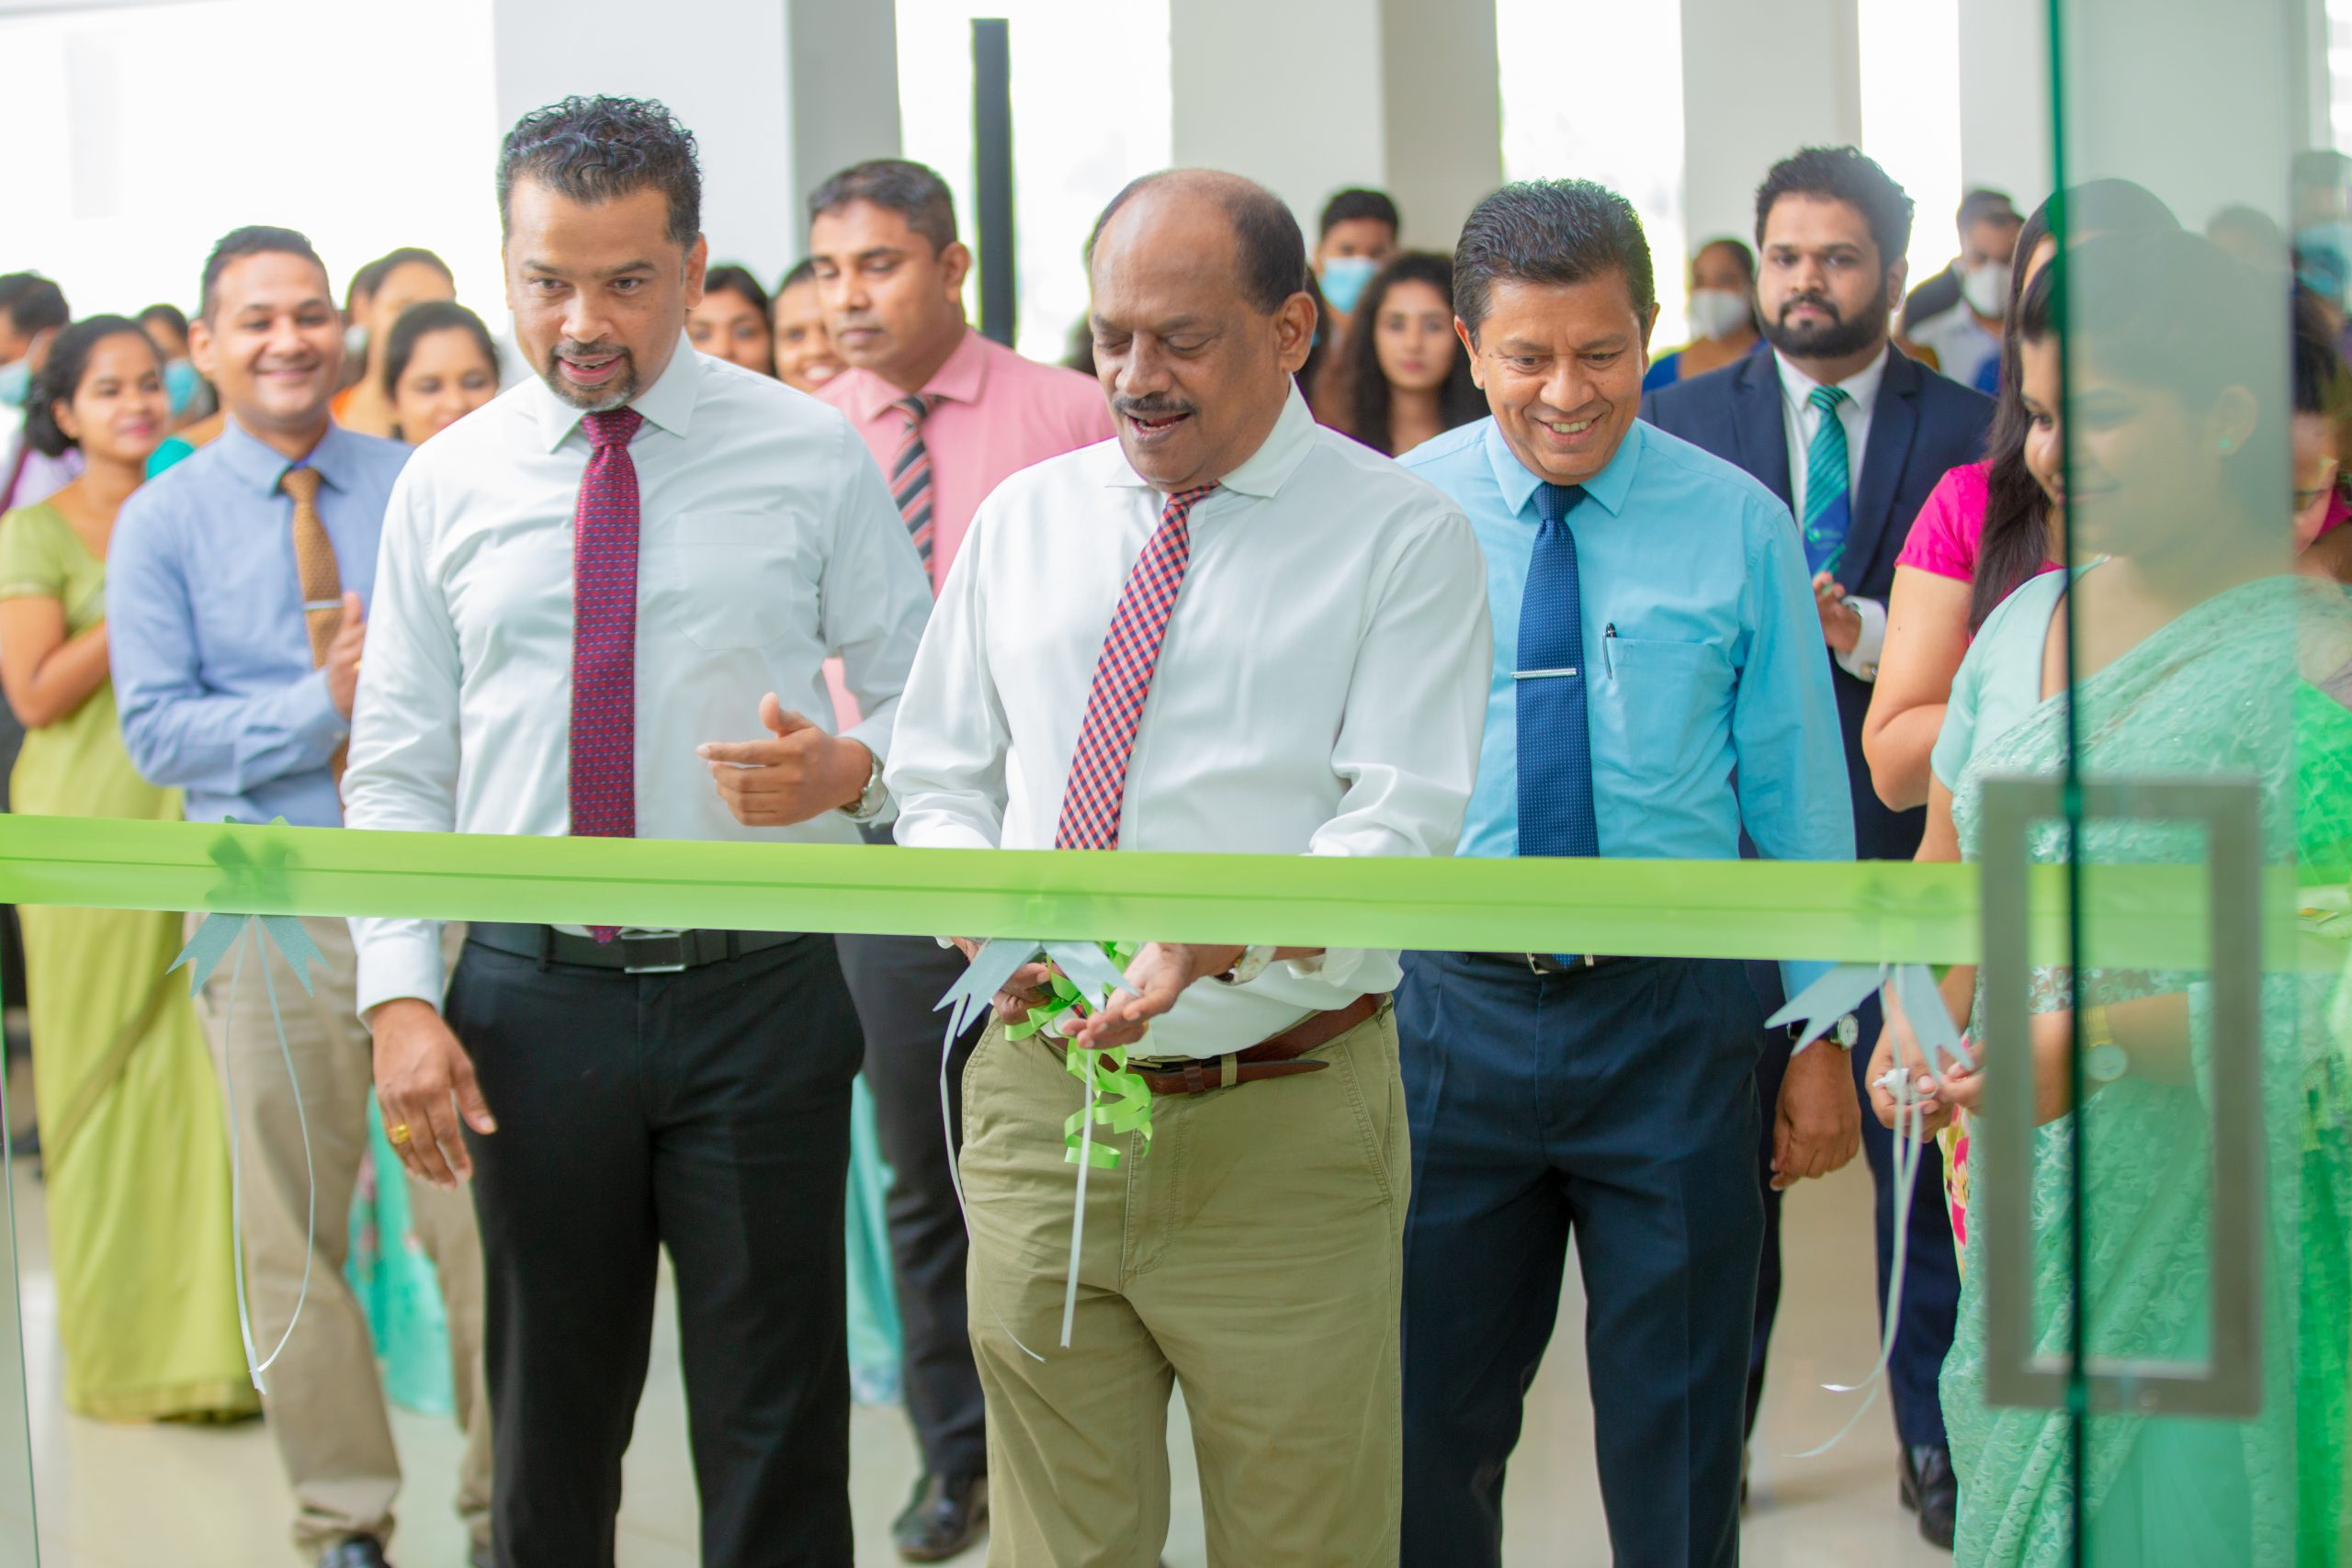 Inauguration ceremony of Department of Accounting and Finance